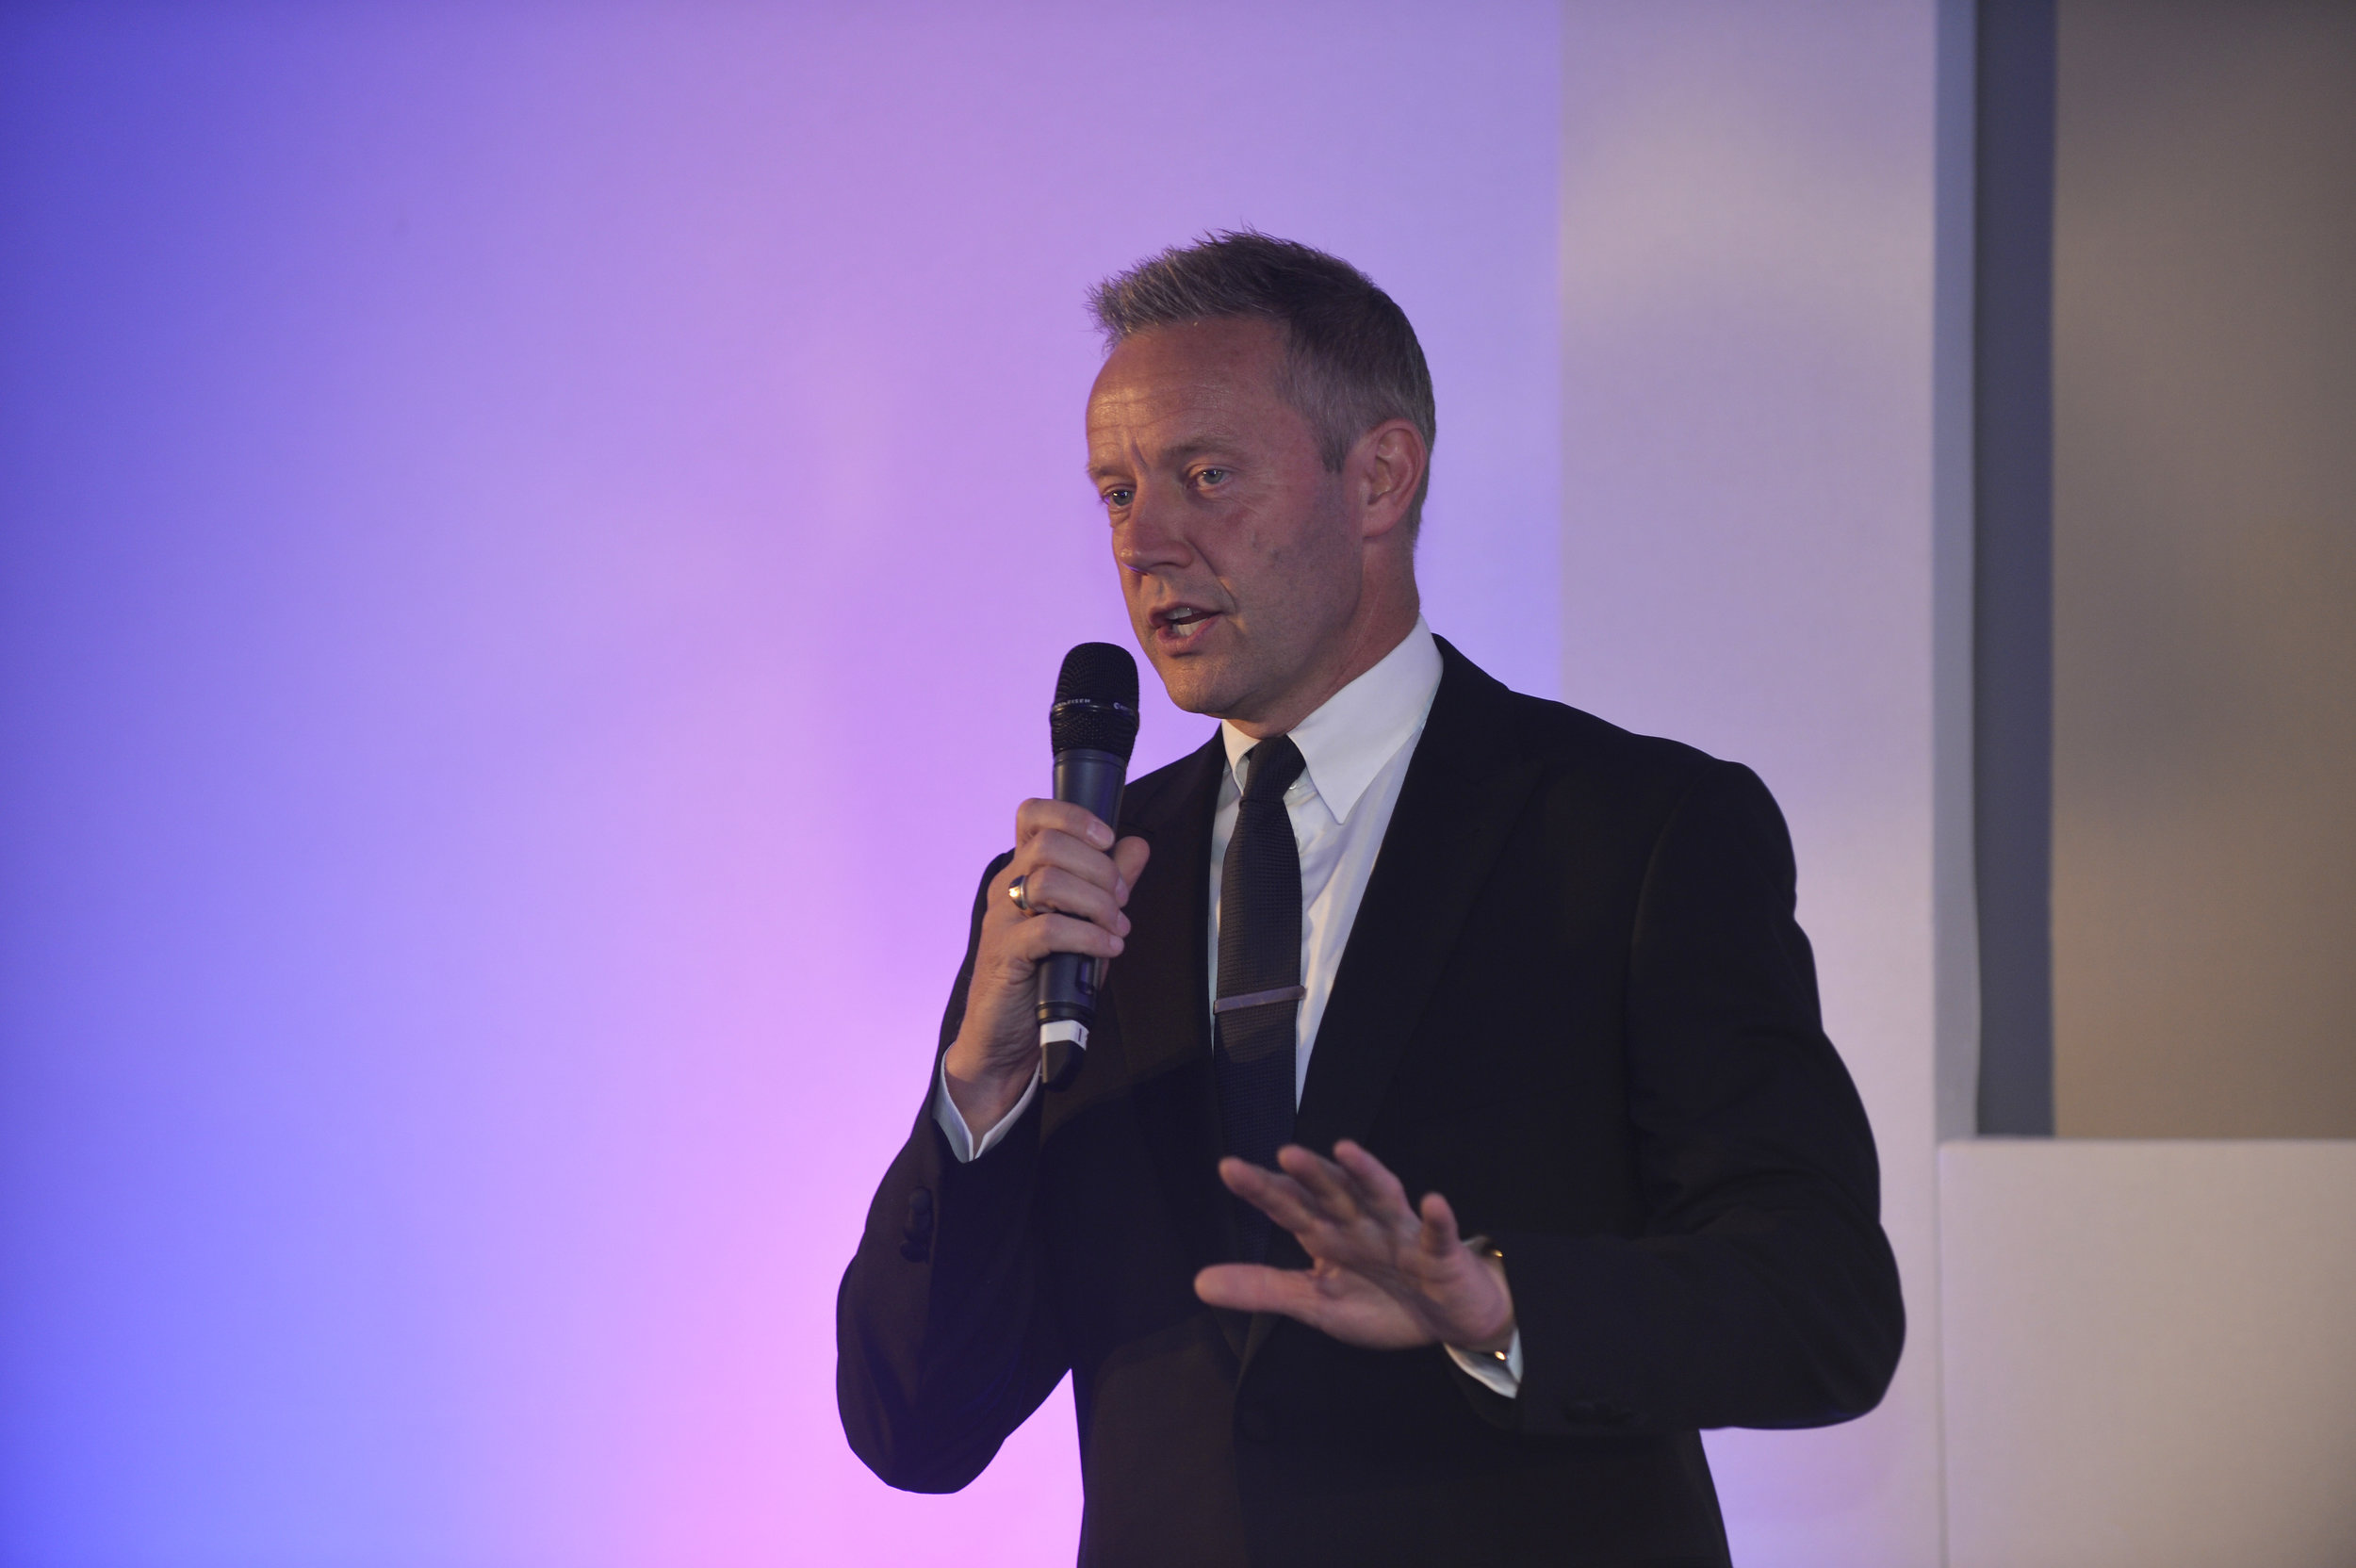 Dary Gayler - NatWest - speaking at the event